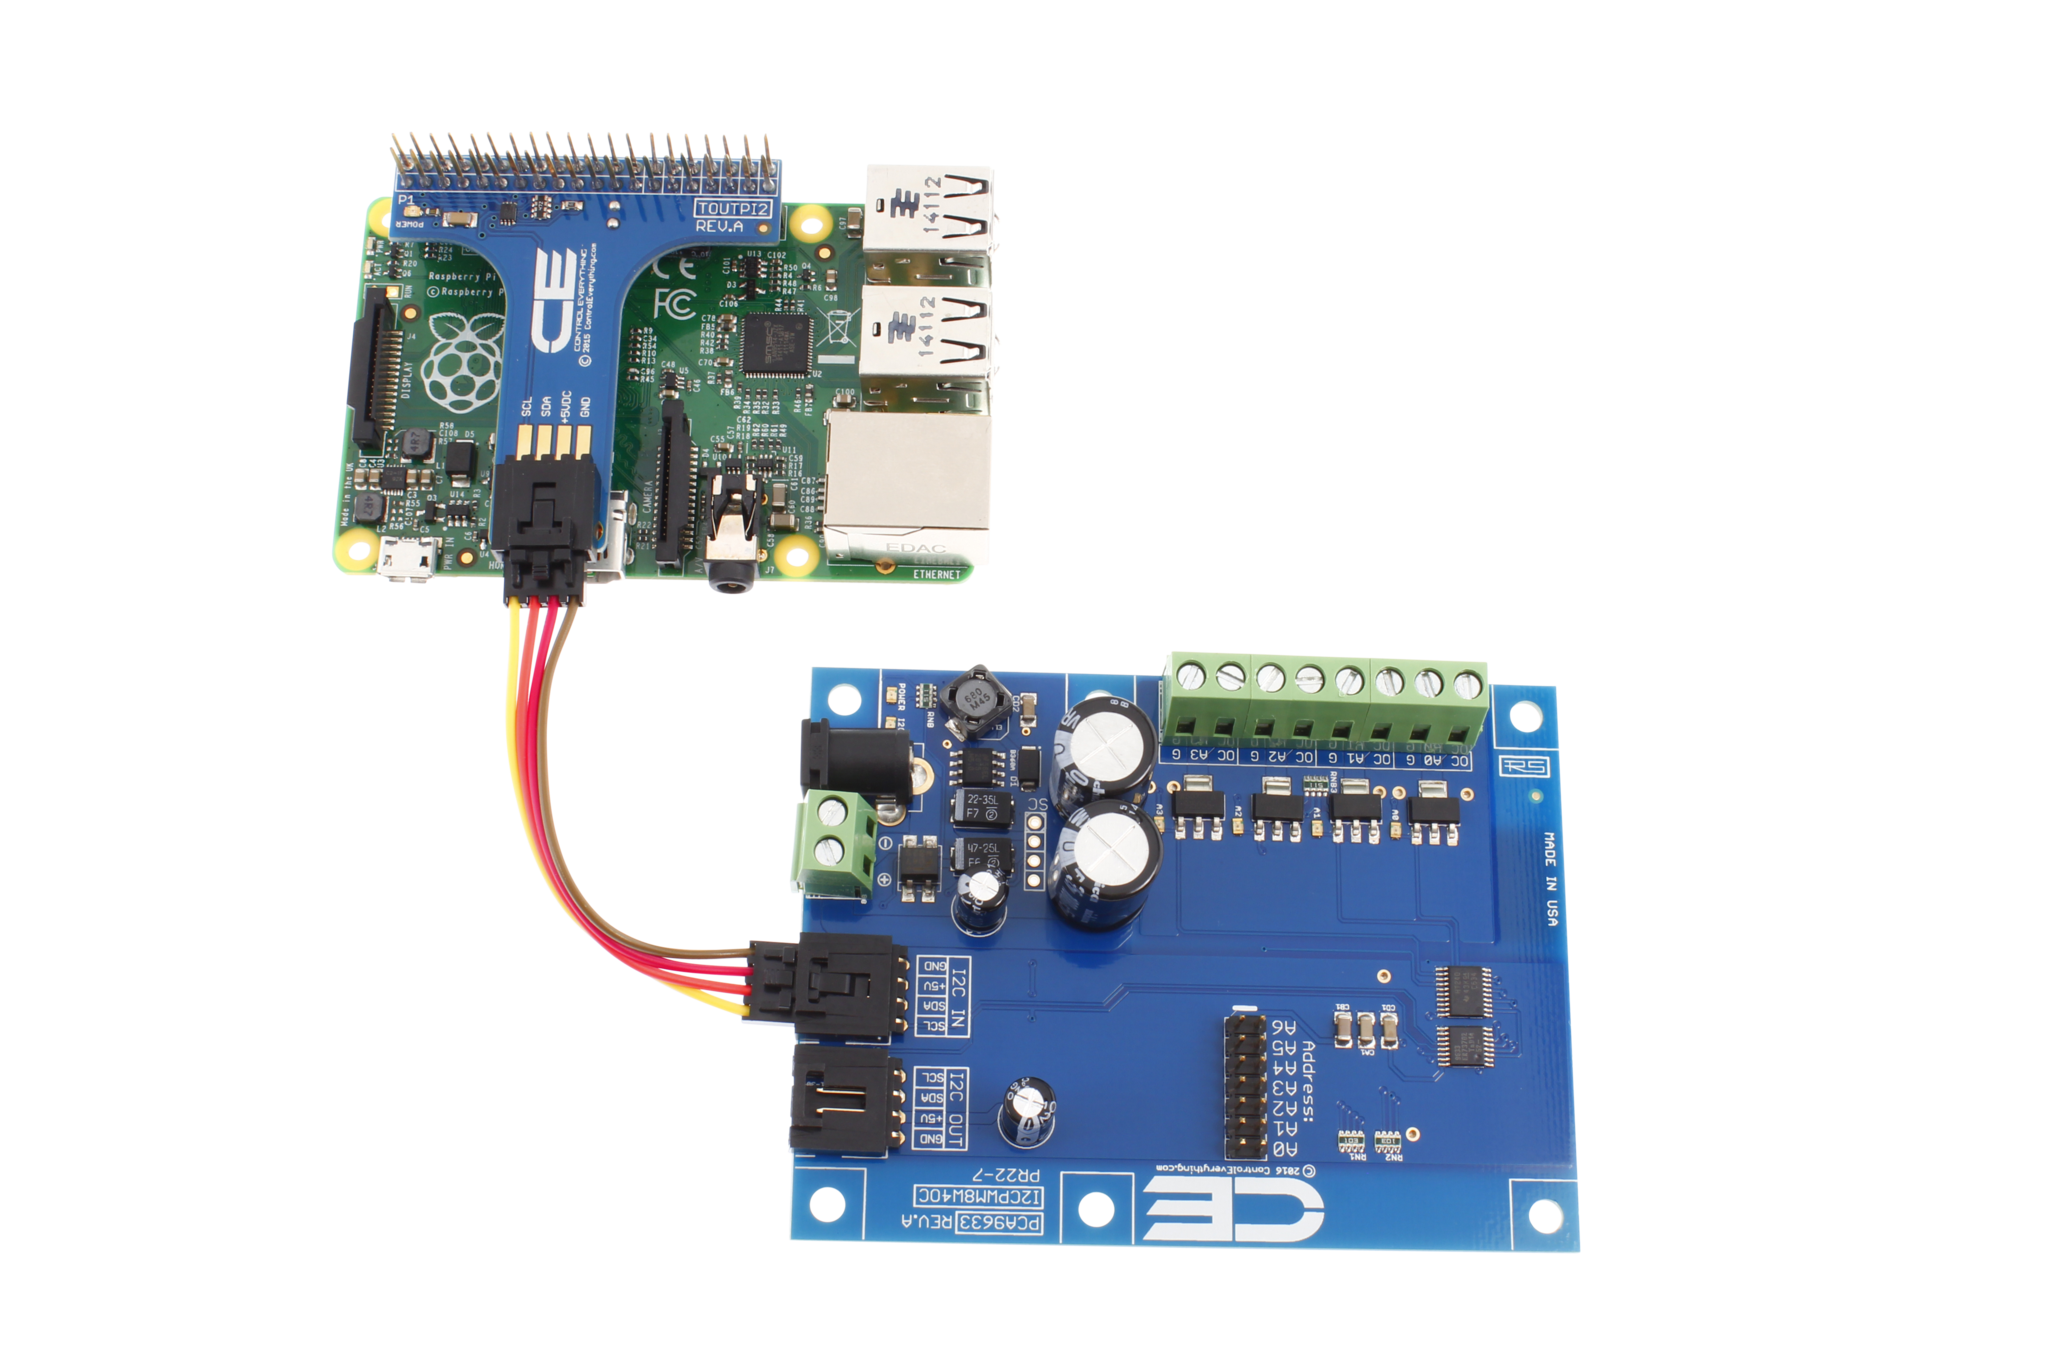 PCA9633 4-Channel 8W Open Collector 8-Bit PWM FET Driver with I2C Interface  - store ncd io